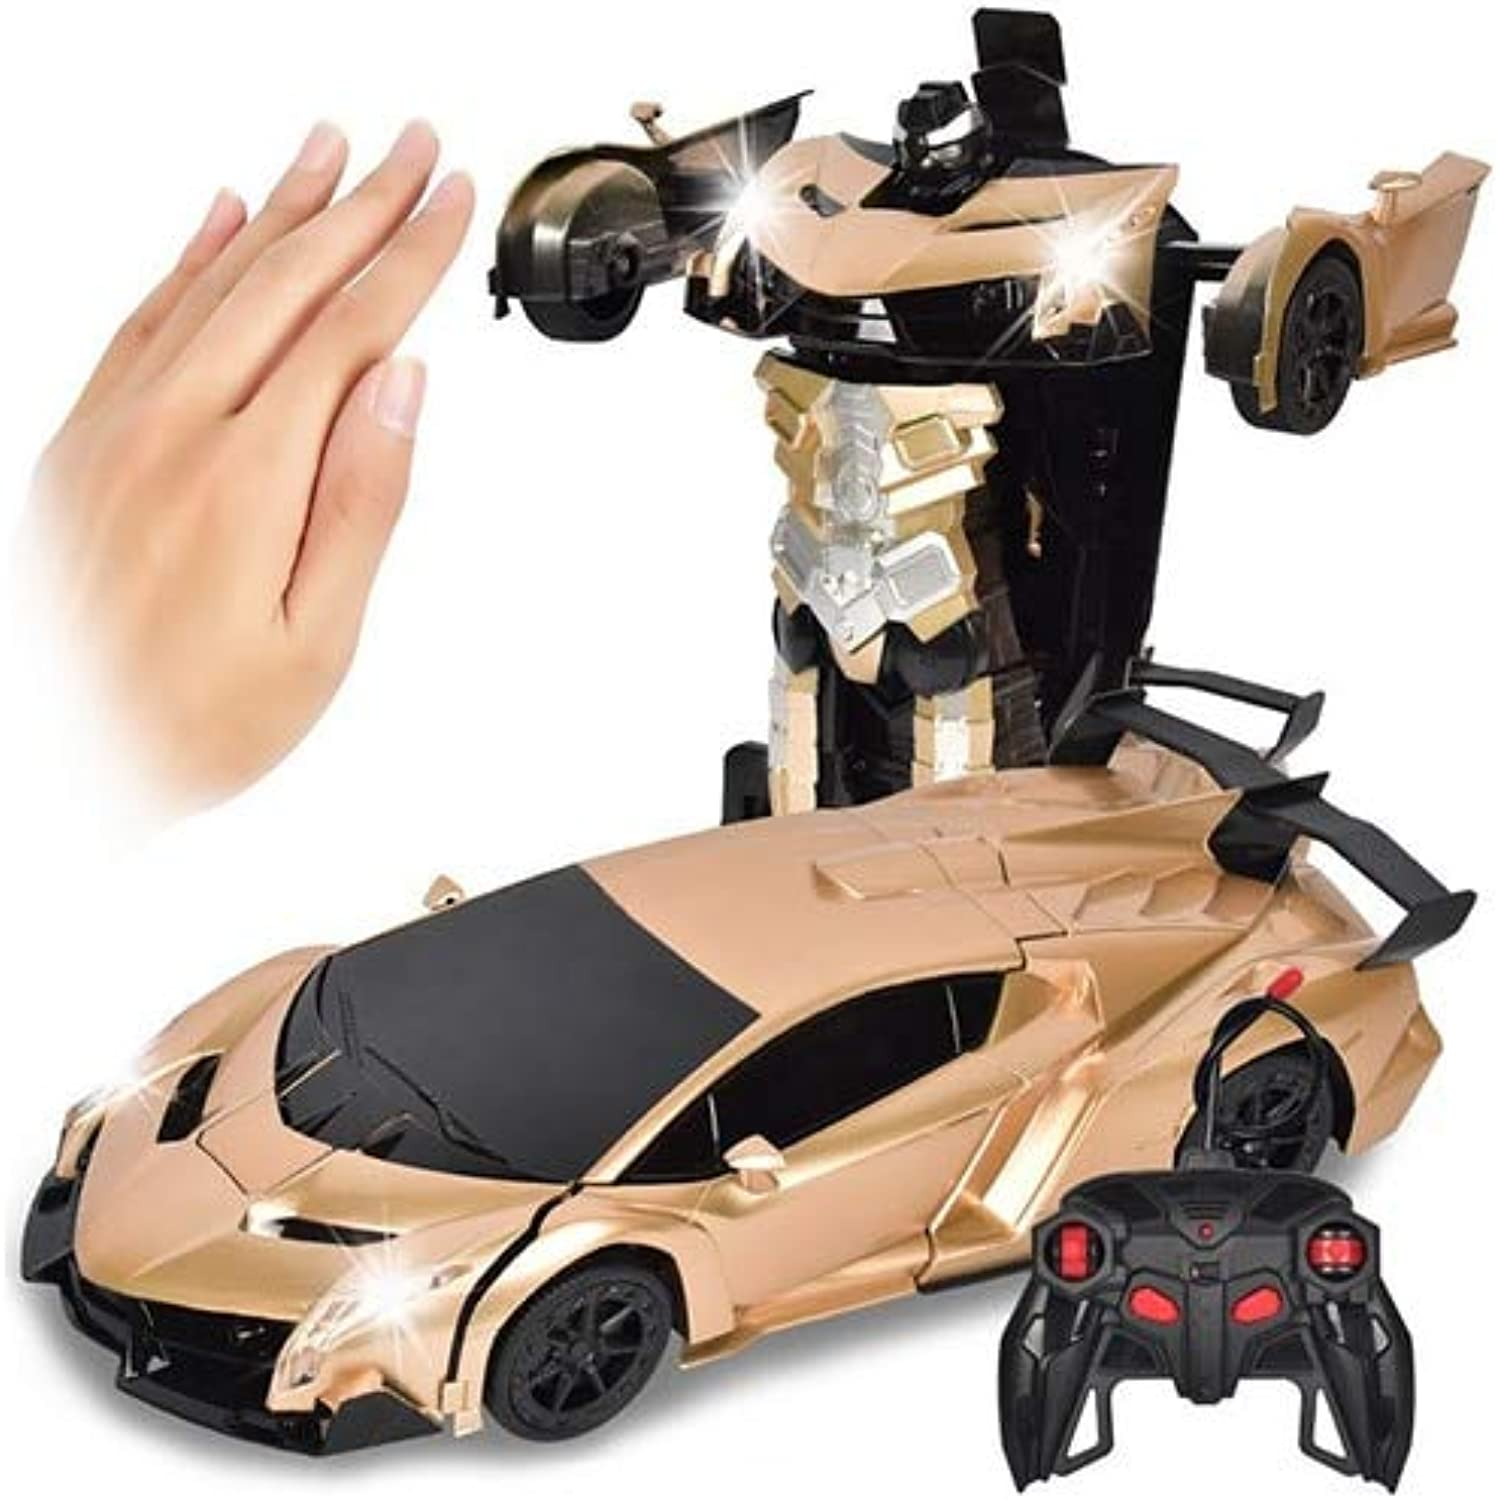 Generic 2 in 1 Gesture Sensing Robot One Button Transformation Remote Control Car Toy 1  12 RC Trucks Drift Toy Gift for Kids gold